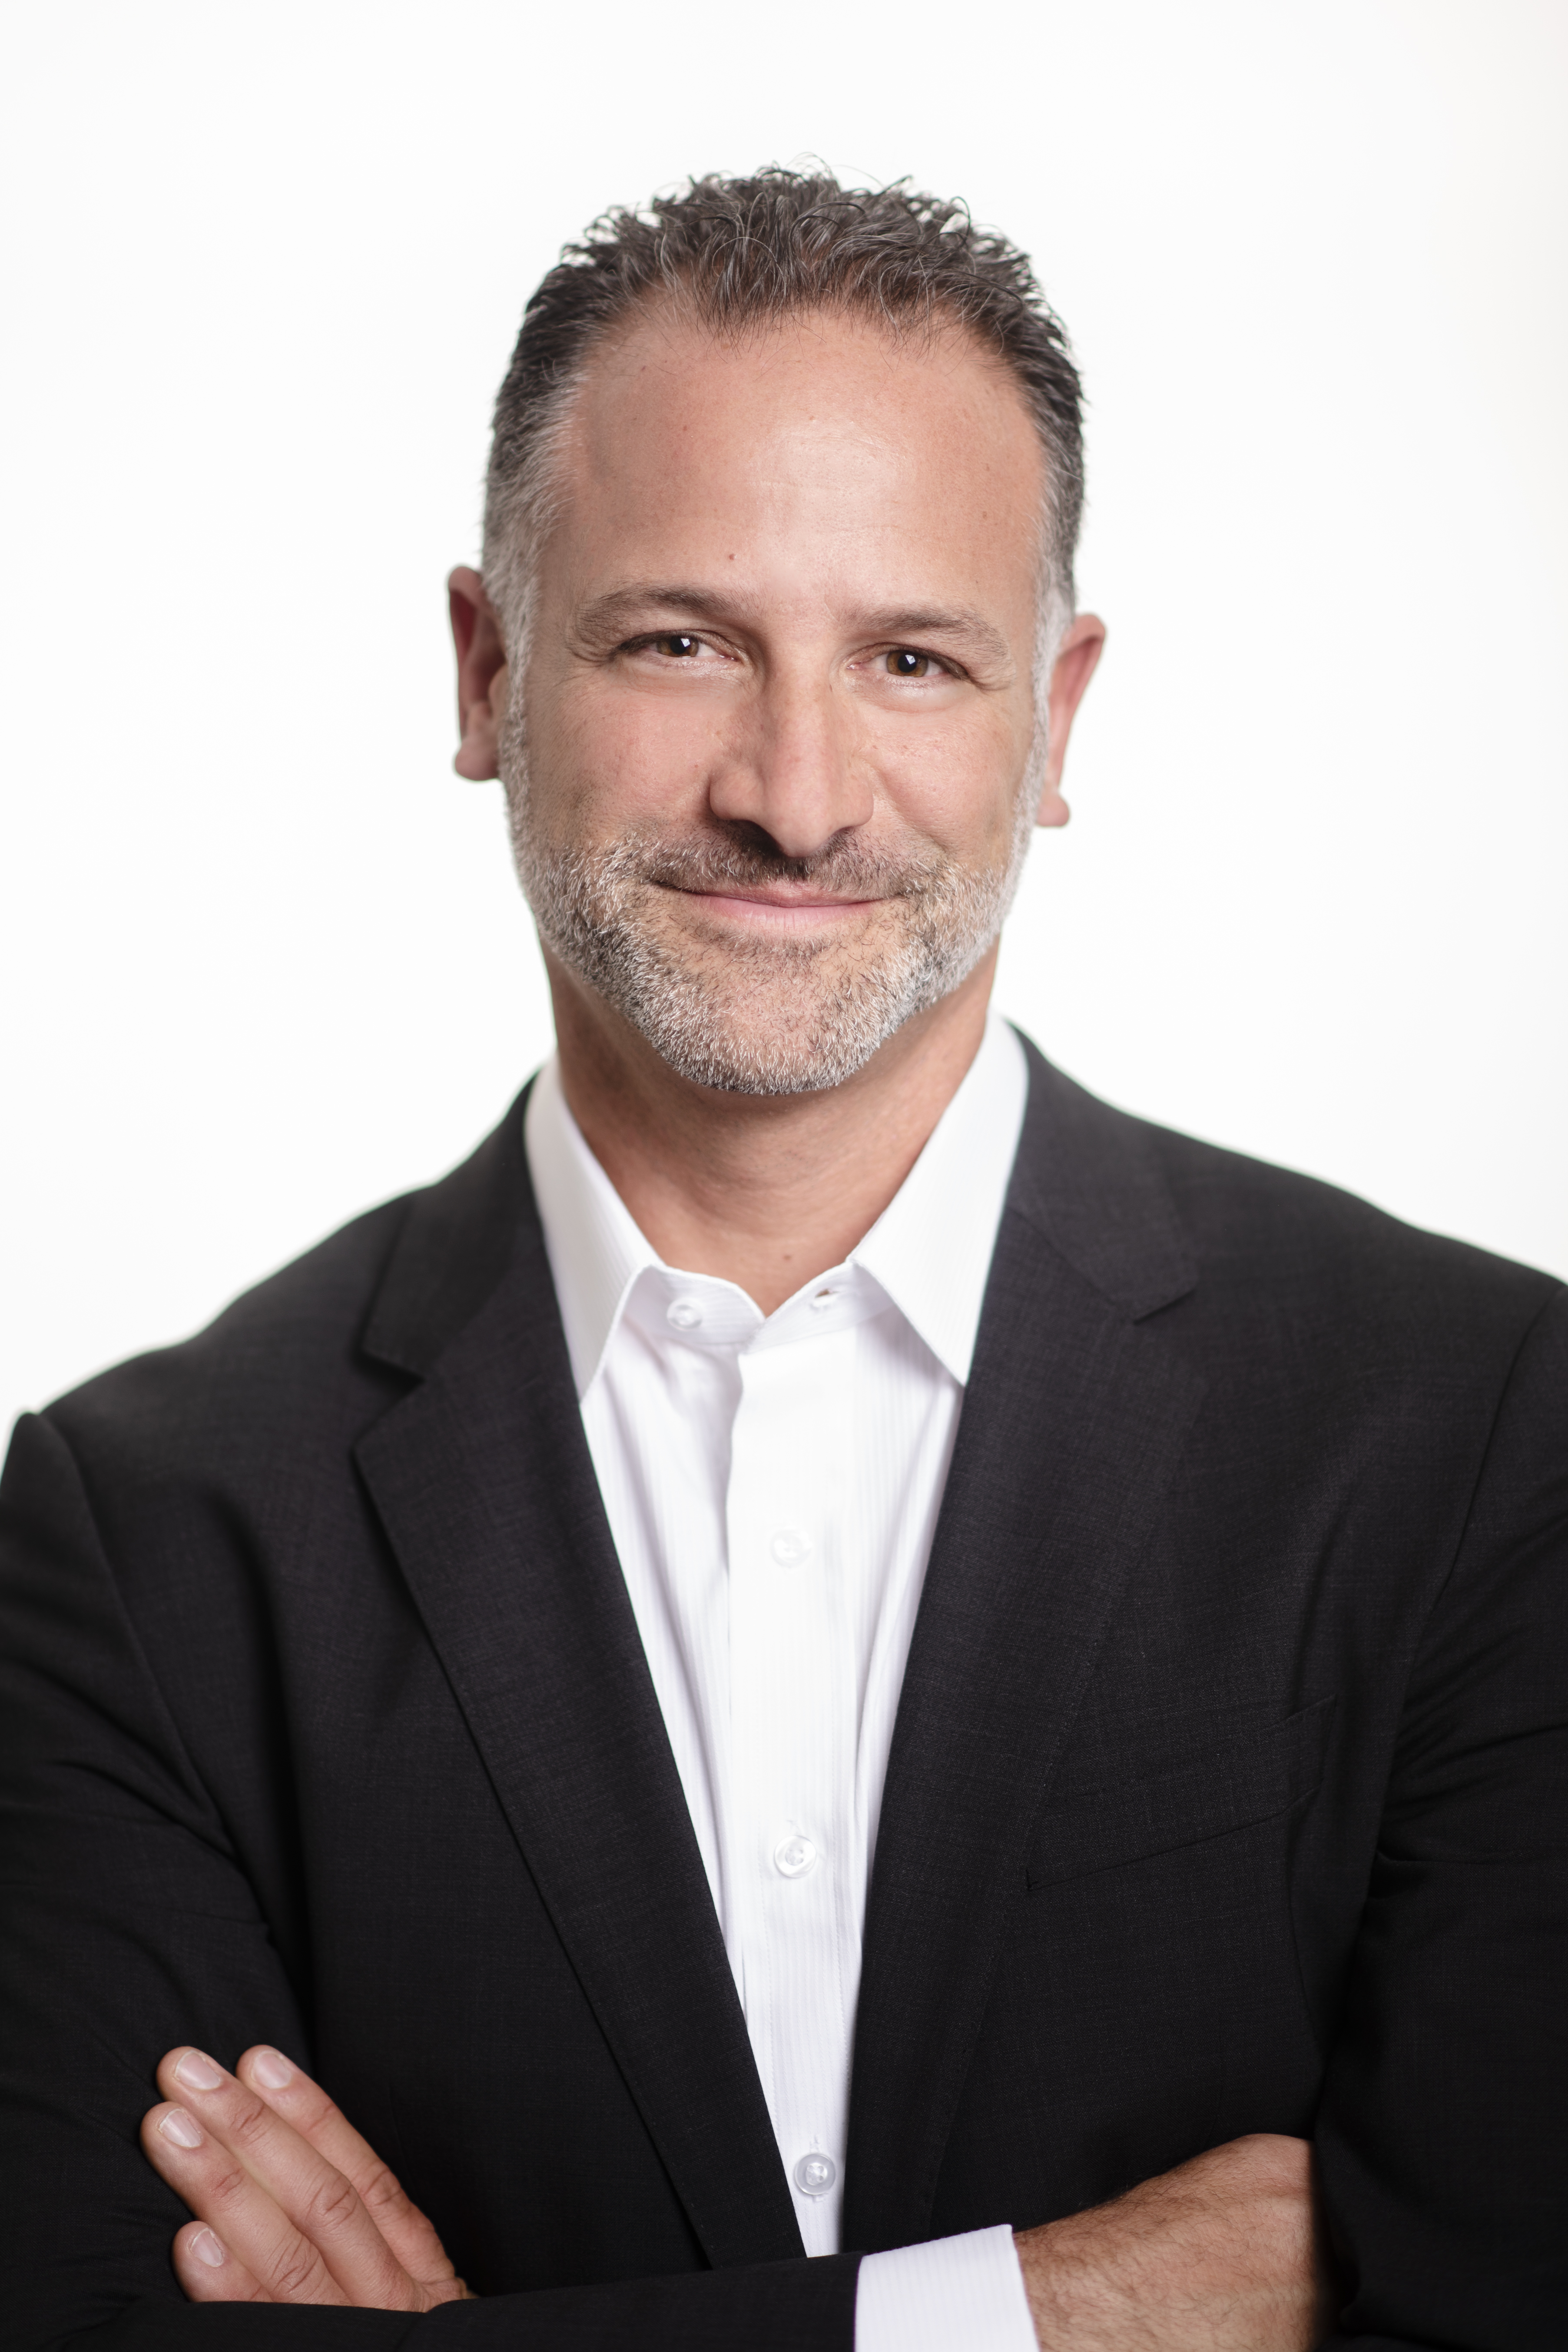 Shawn Zigelstein, Toronto Real Estate Lawyer